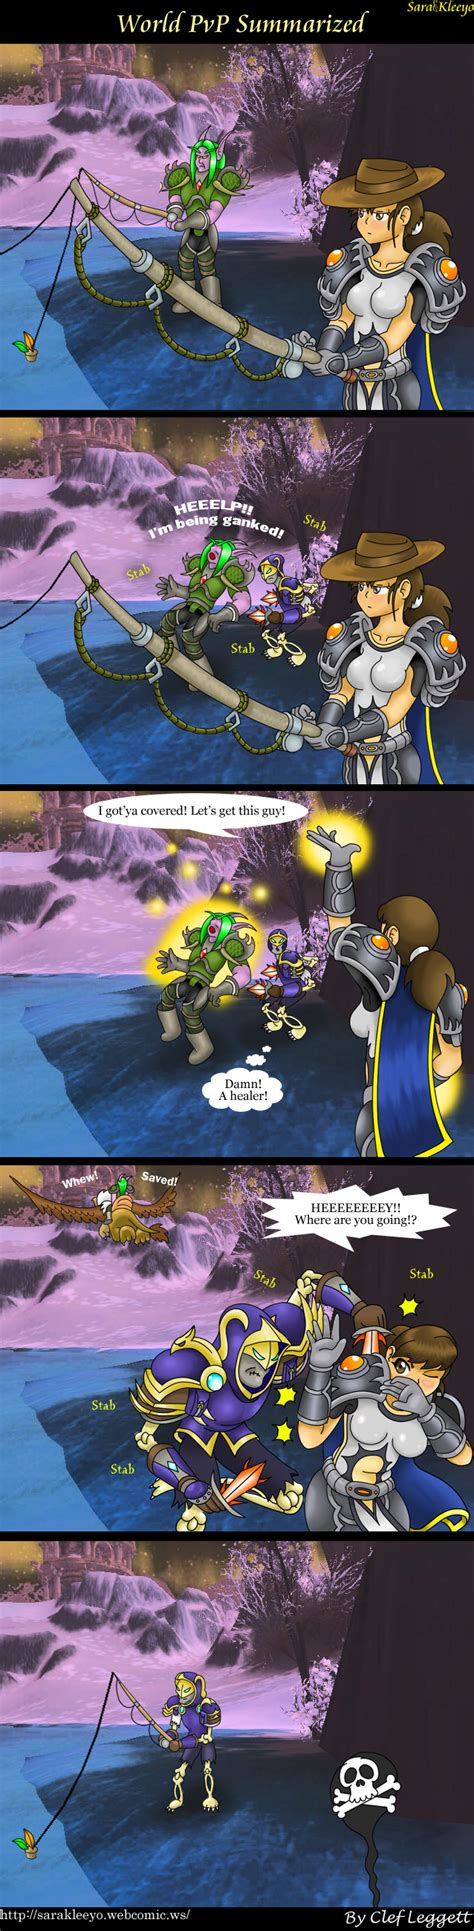 wow its night time world of warcraft funny on world of warcraft pvp and comic